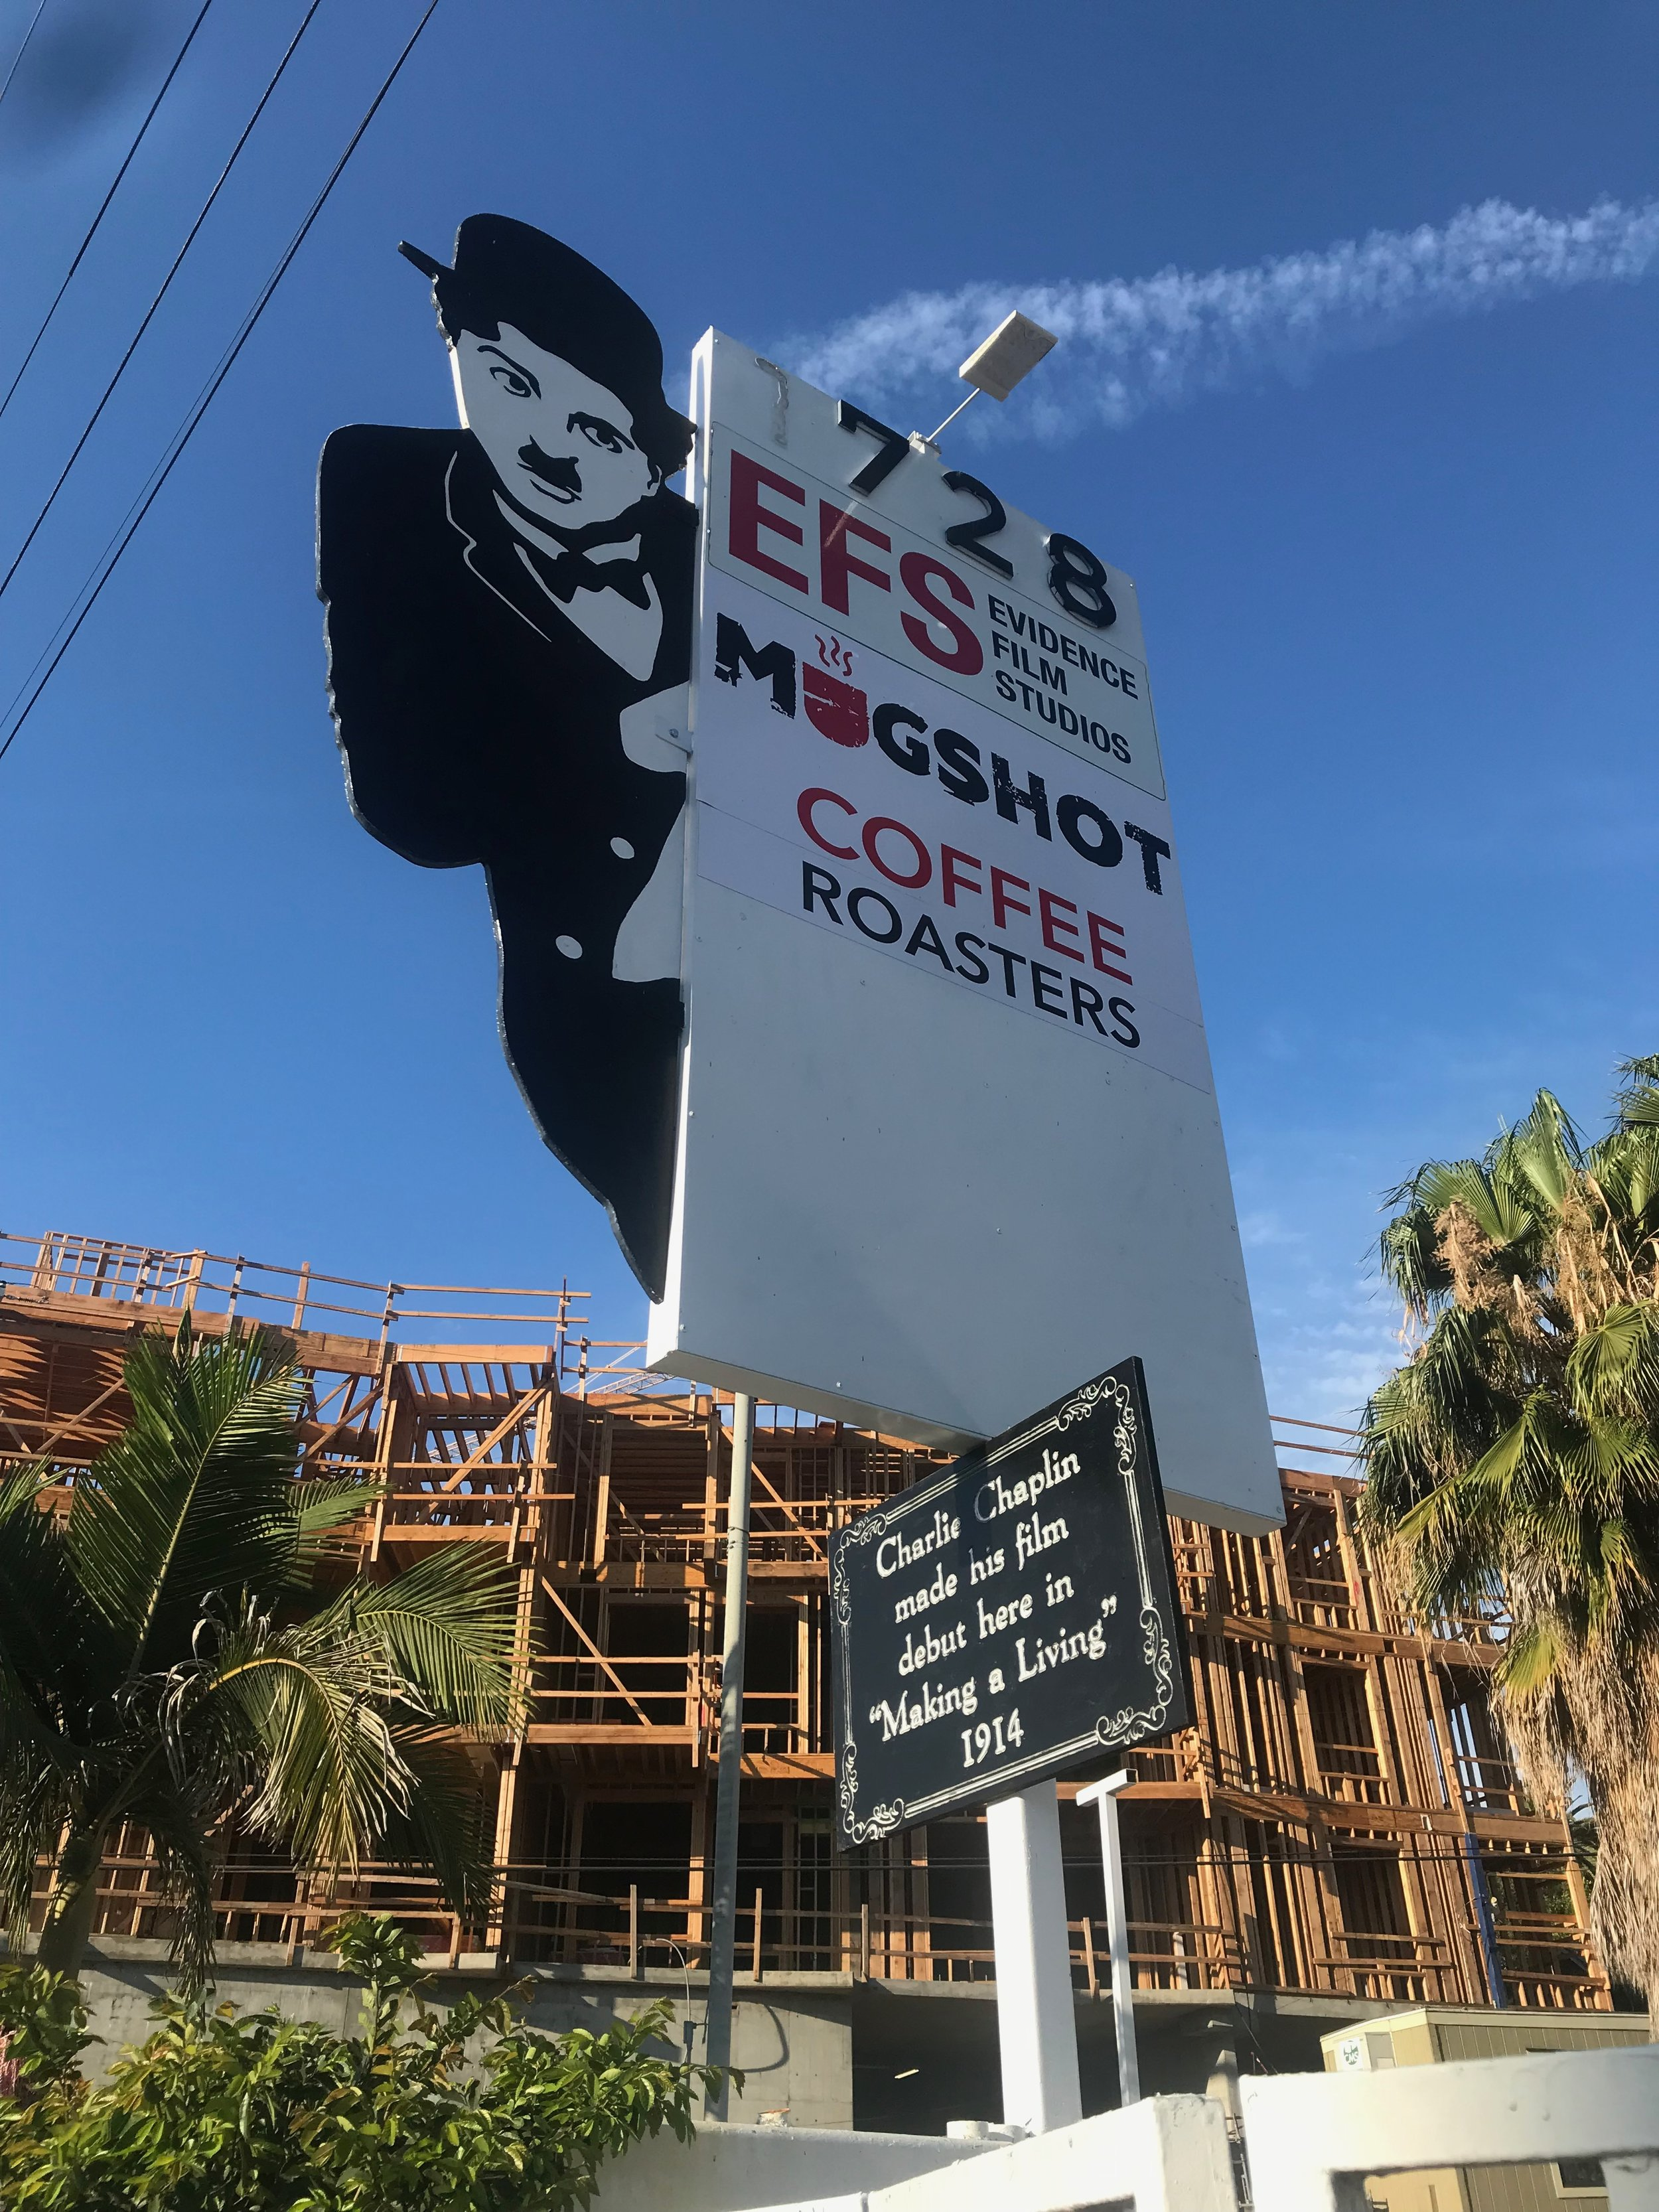 Mugshot Coffee Roasters, 1728 Glendale Blvd (image provided by the author).